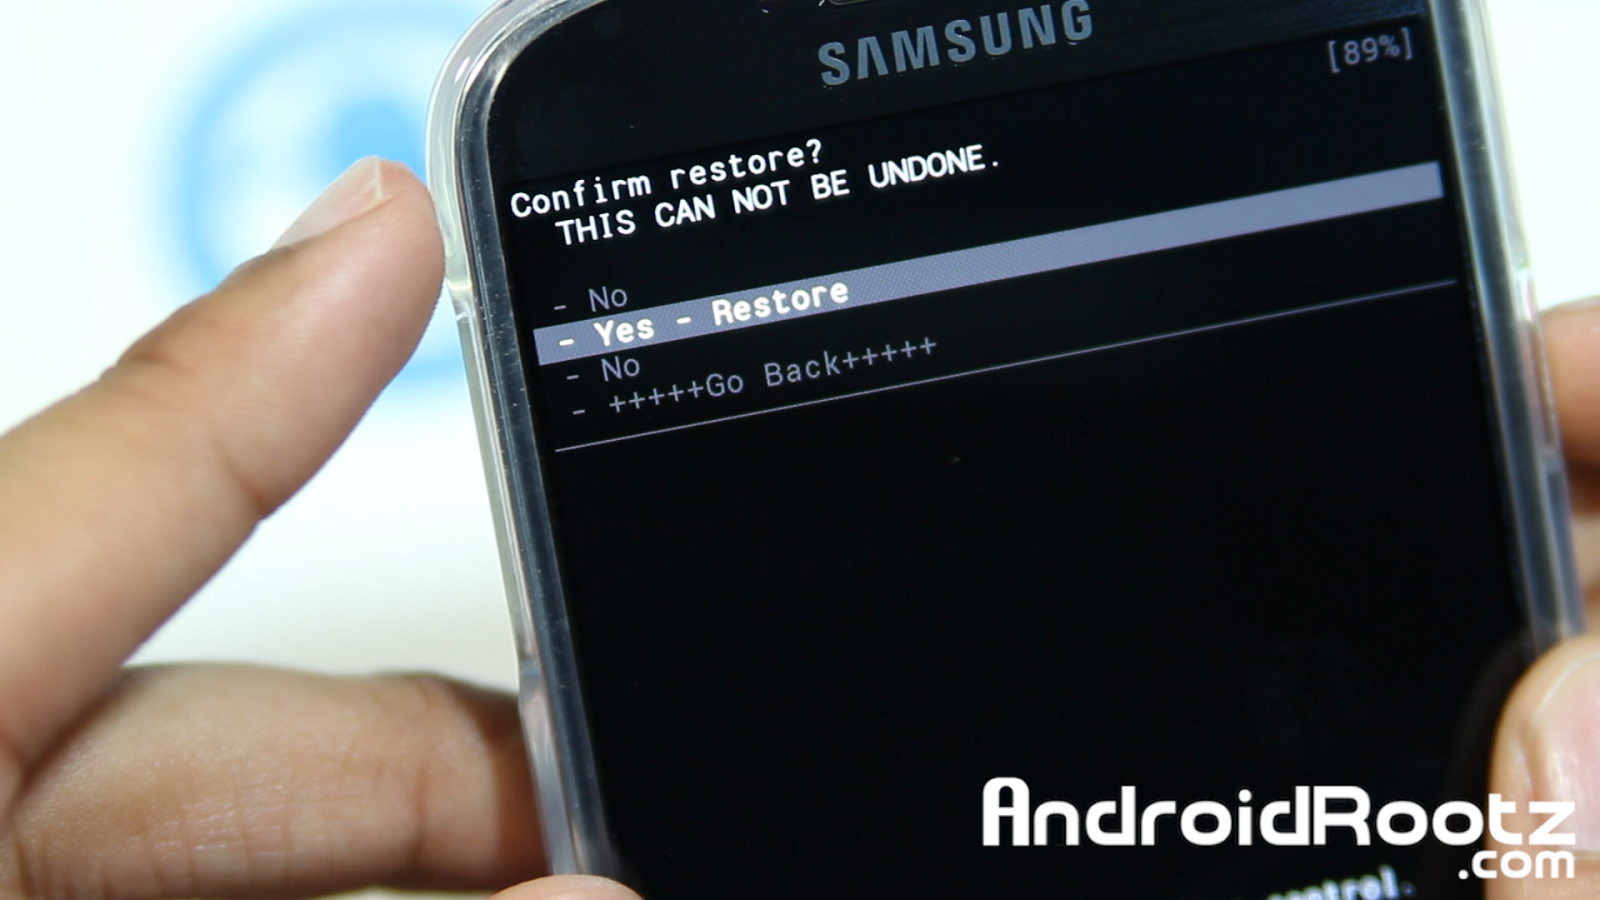 Phone Complete Phone Backup Android how to do a nandroid backup on galaxy s4 and restore rom select yes wait for about 10 15 minutes the restoration process complete